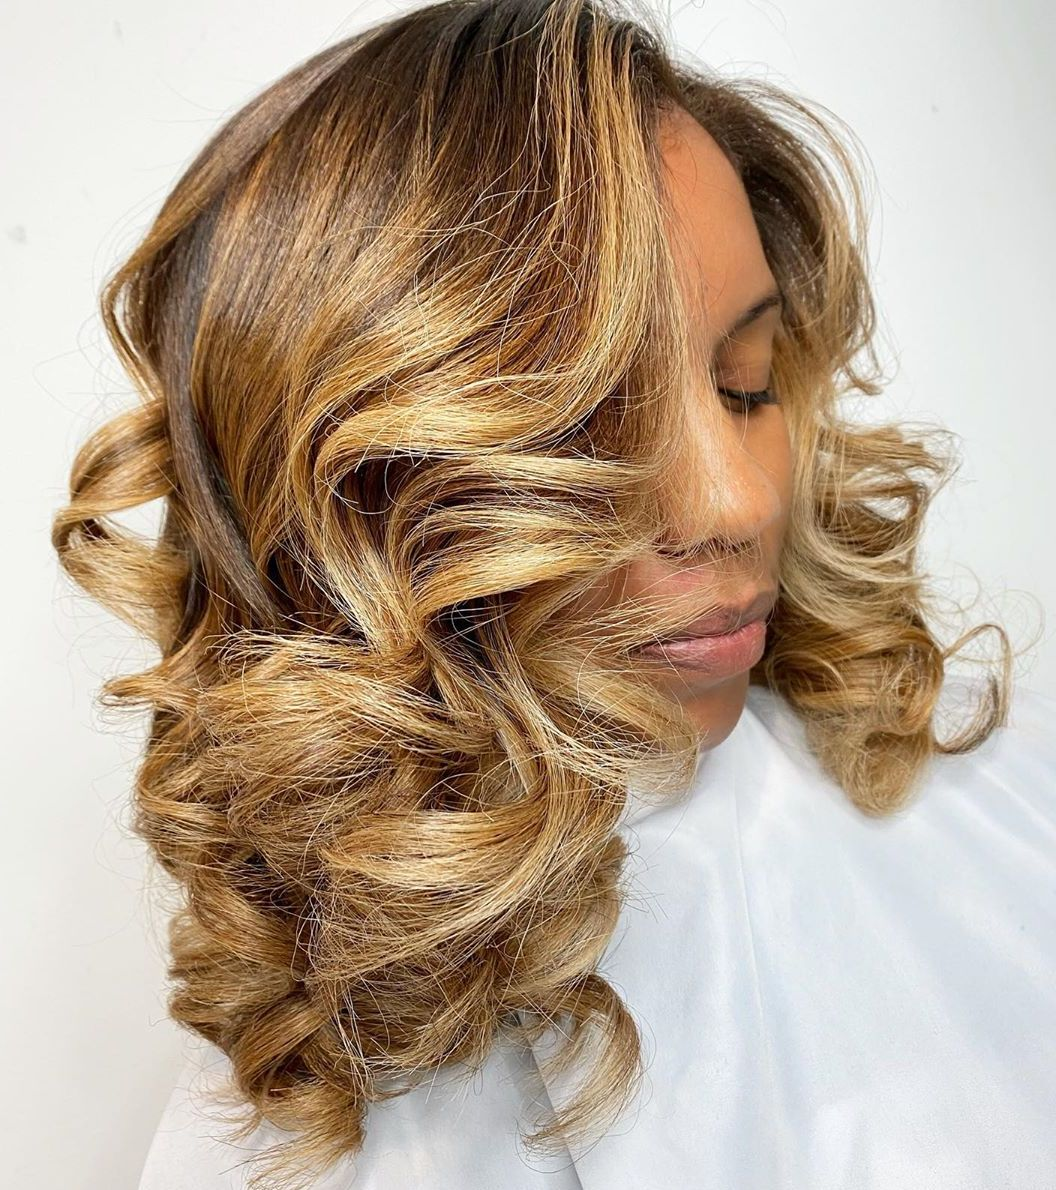 Caramel Brown Hair with Golden Highlights